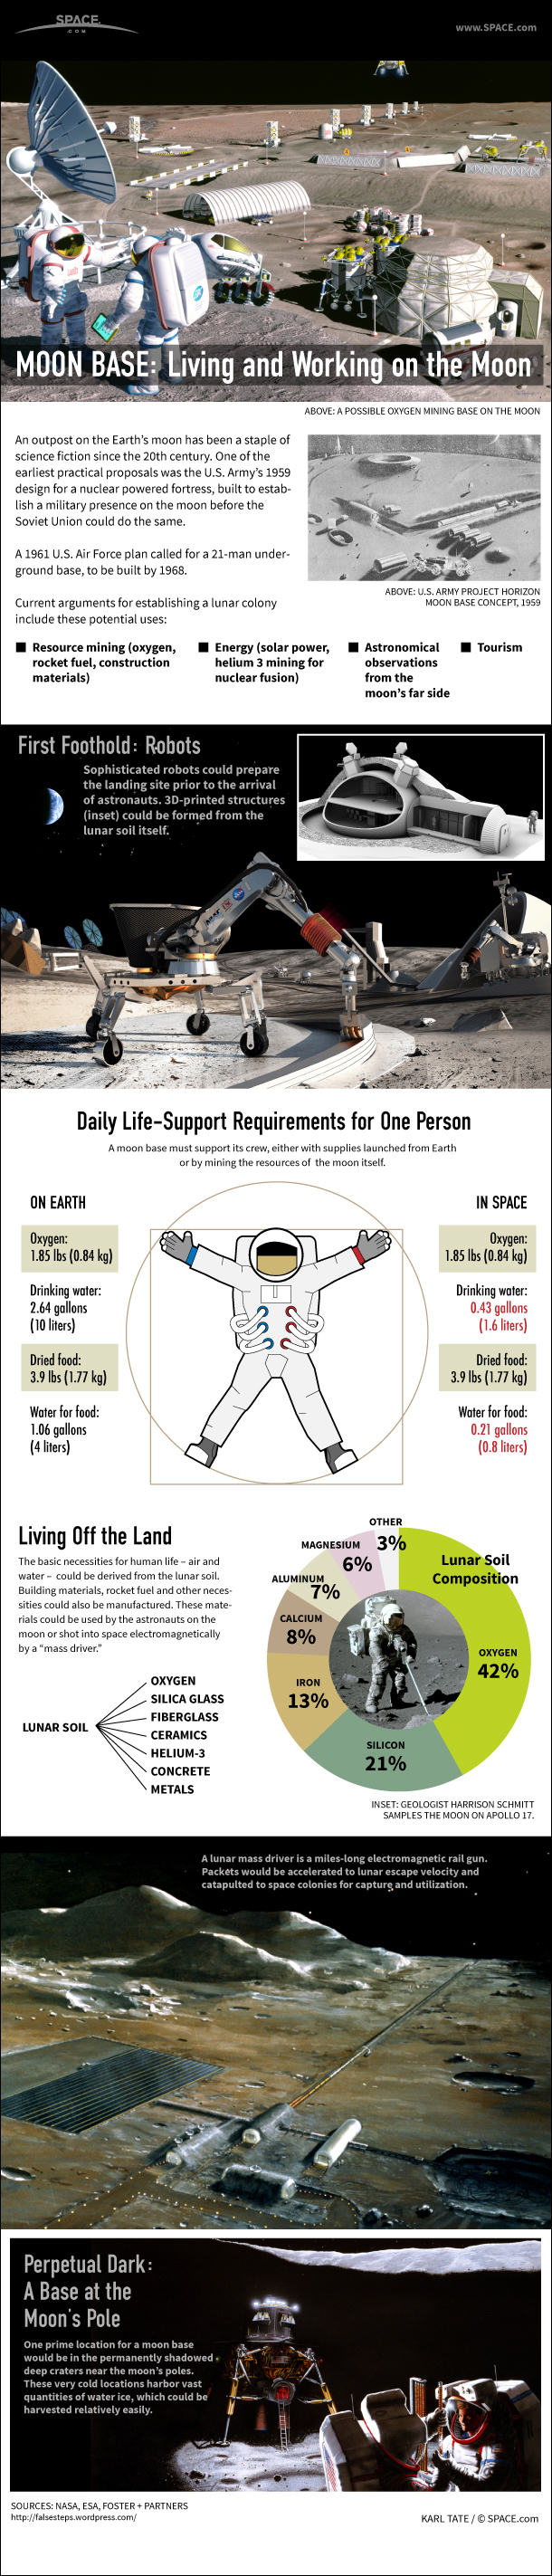 Infographic: How mining colonies could be set up on the moon.